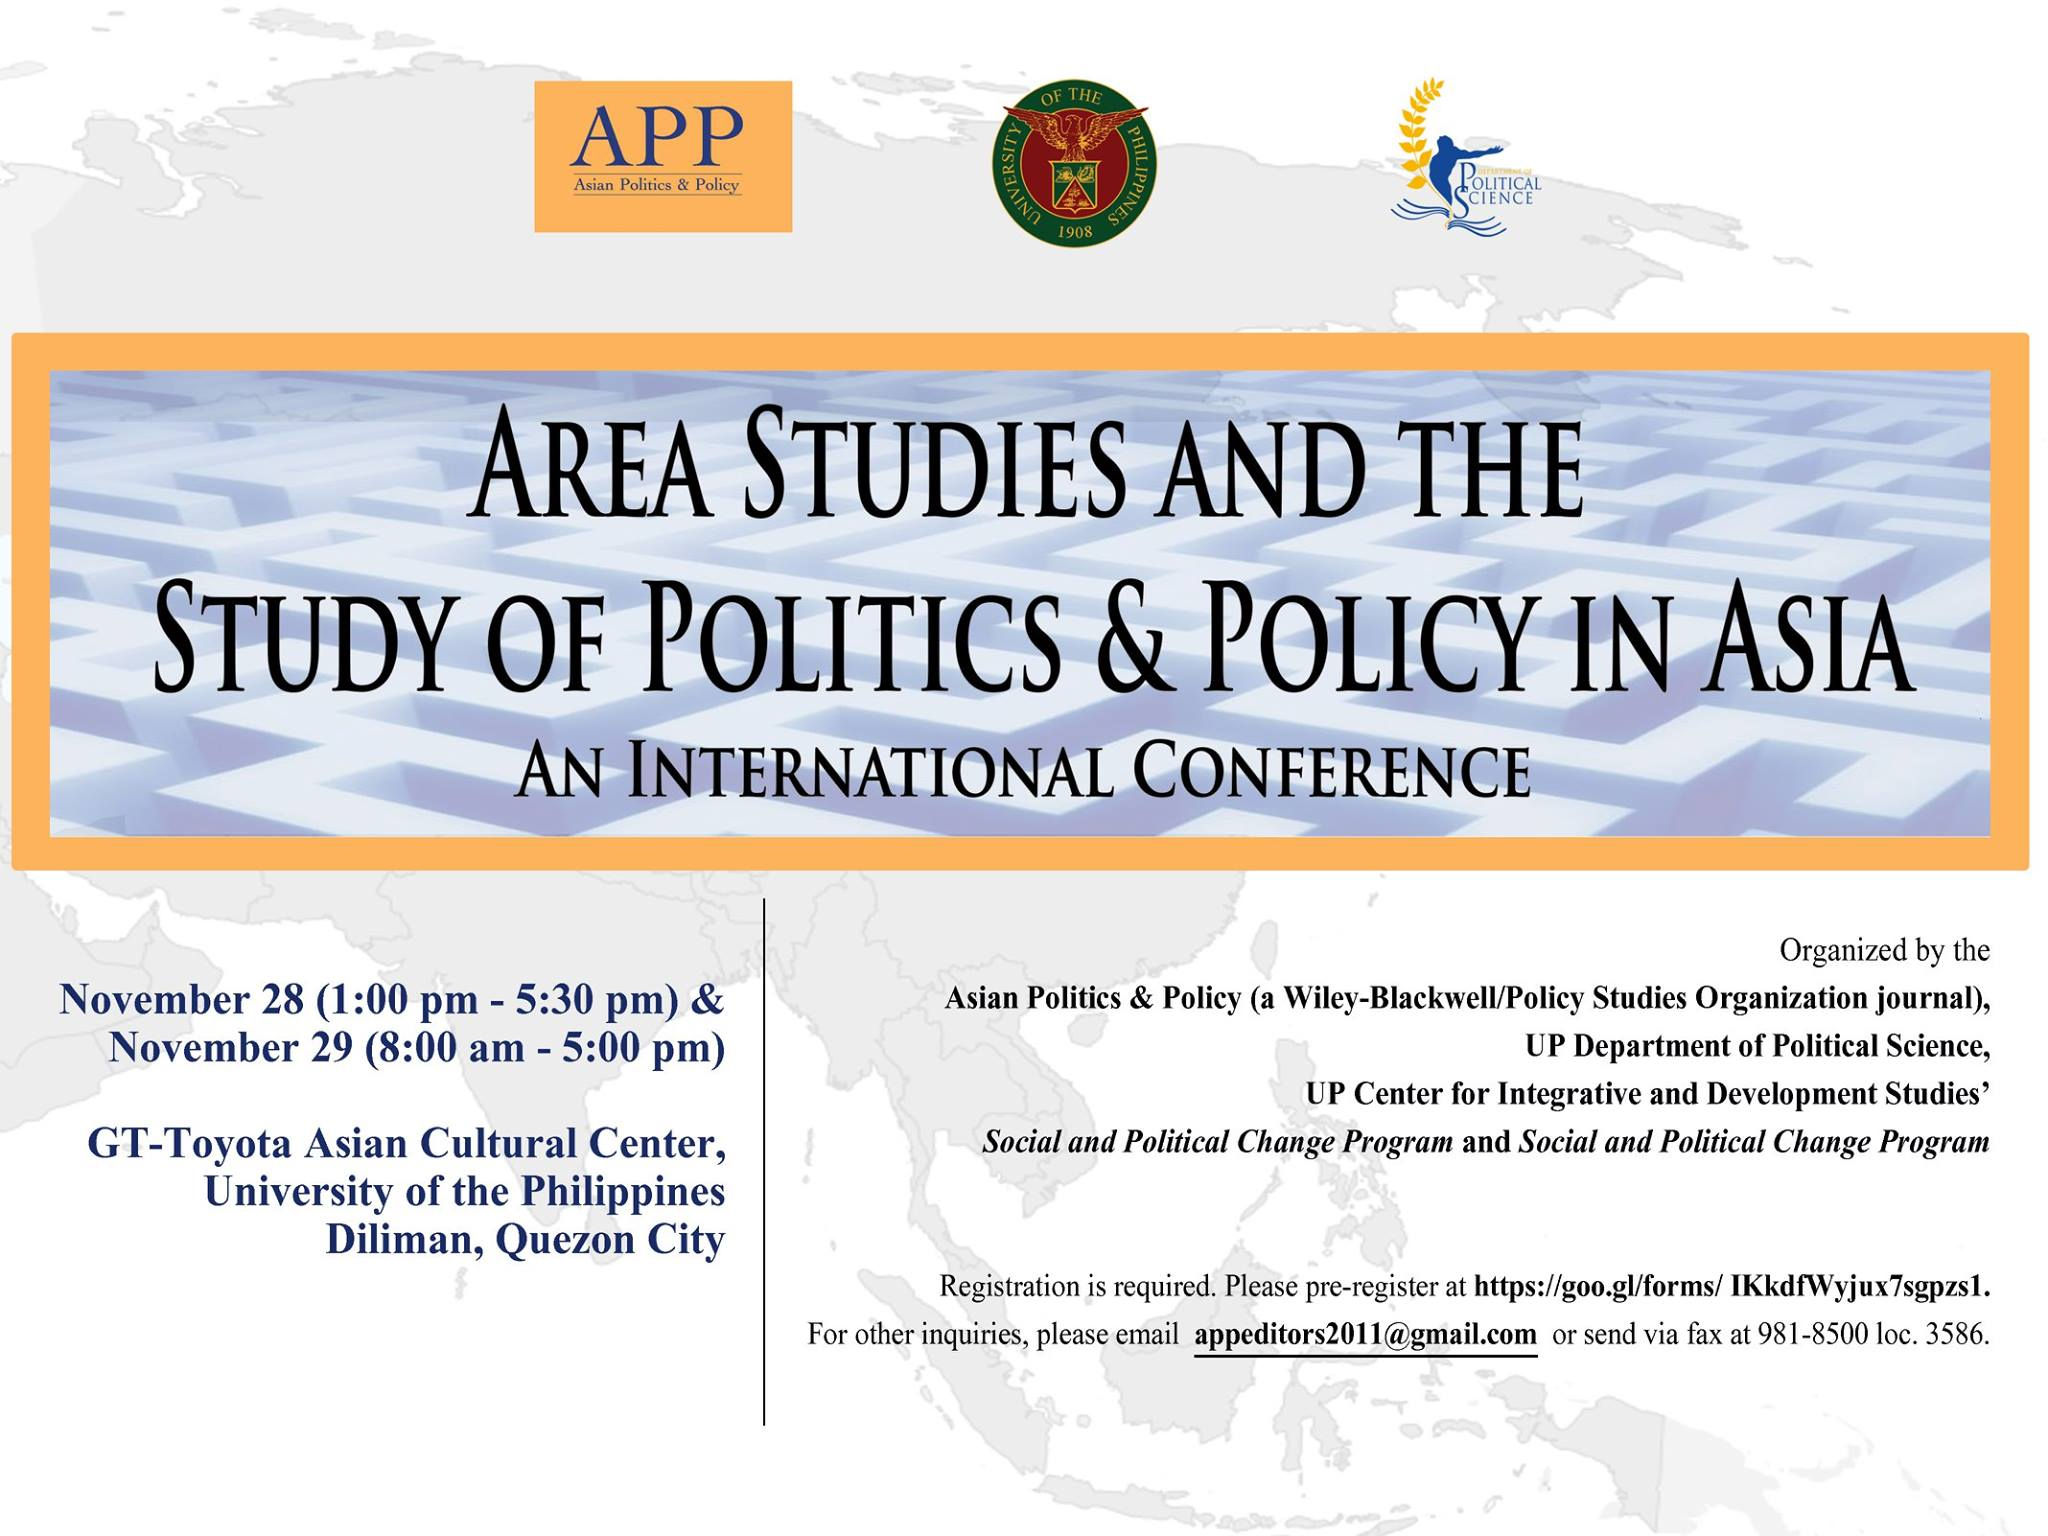 Asian politics and policy journal